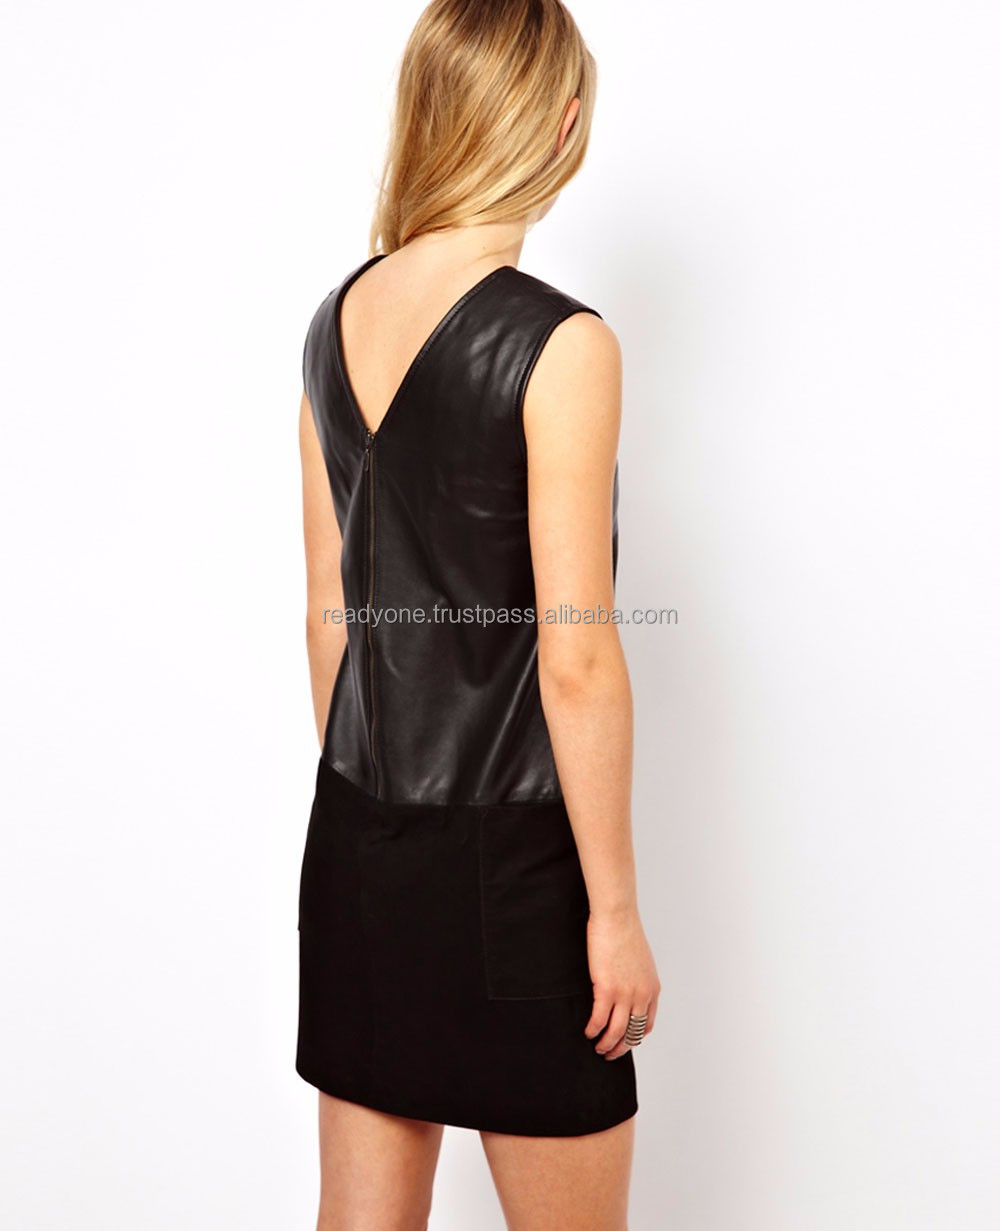 New Arrival High Quality Sexy Latex dress/faux leather dress/pvc dress